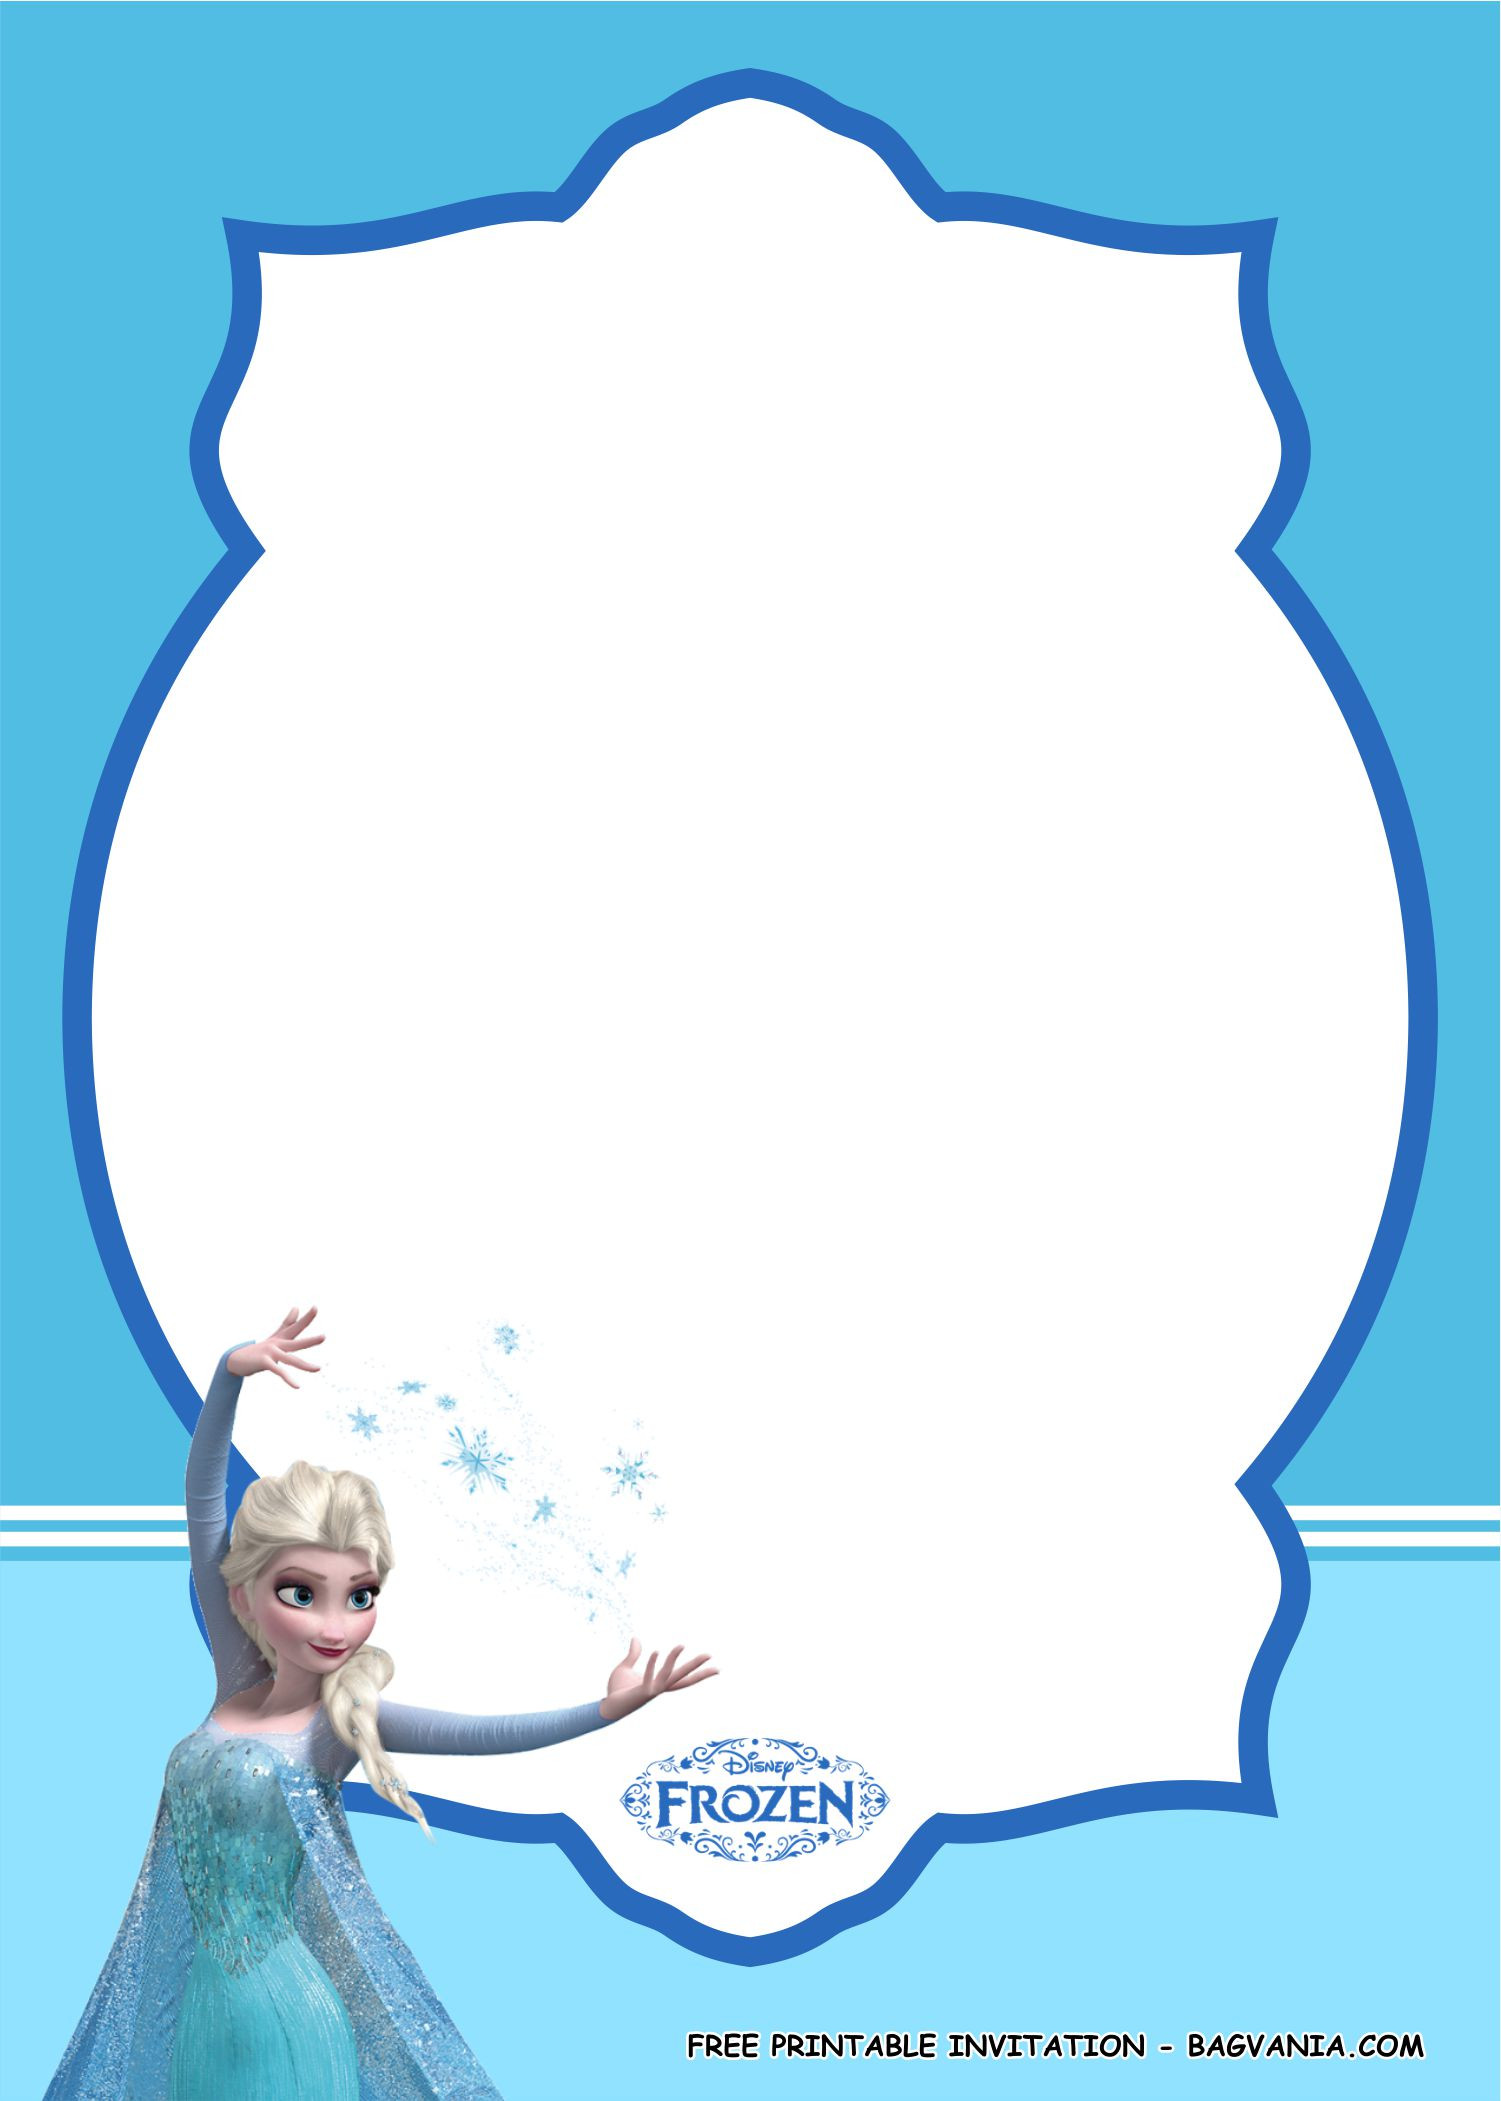 Frozen Invite Printable Free Printable Amazing Frozen Birthday Party Kits – Free